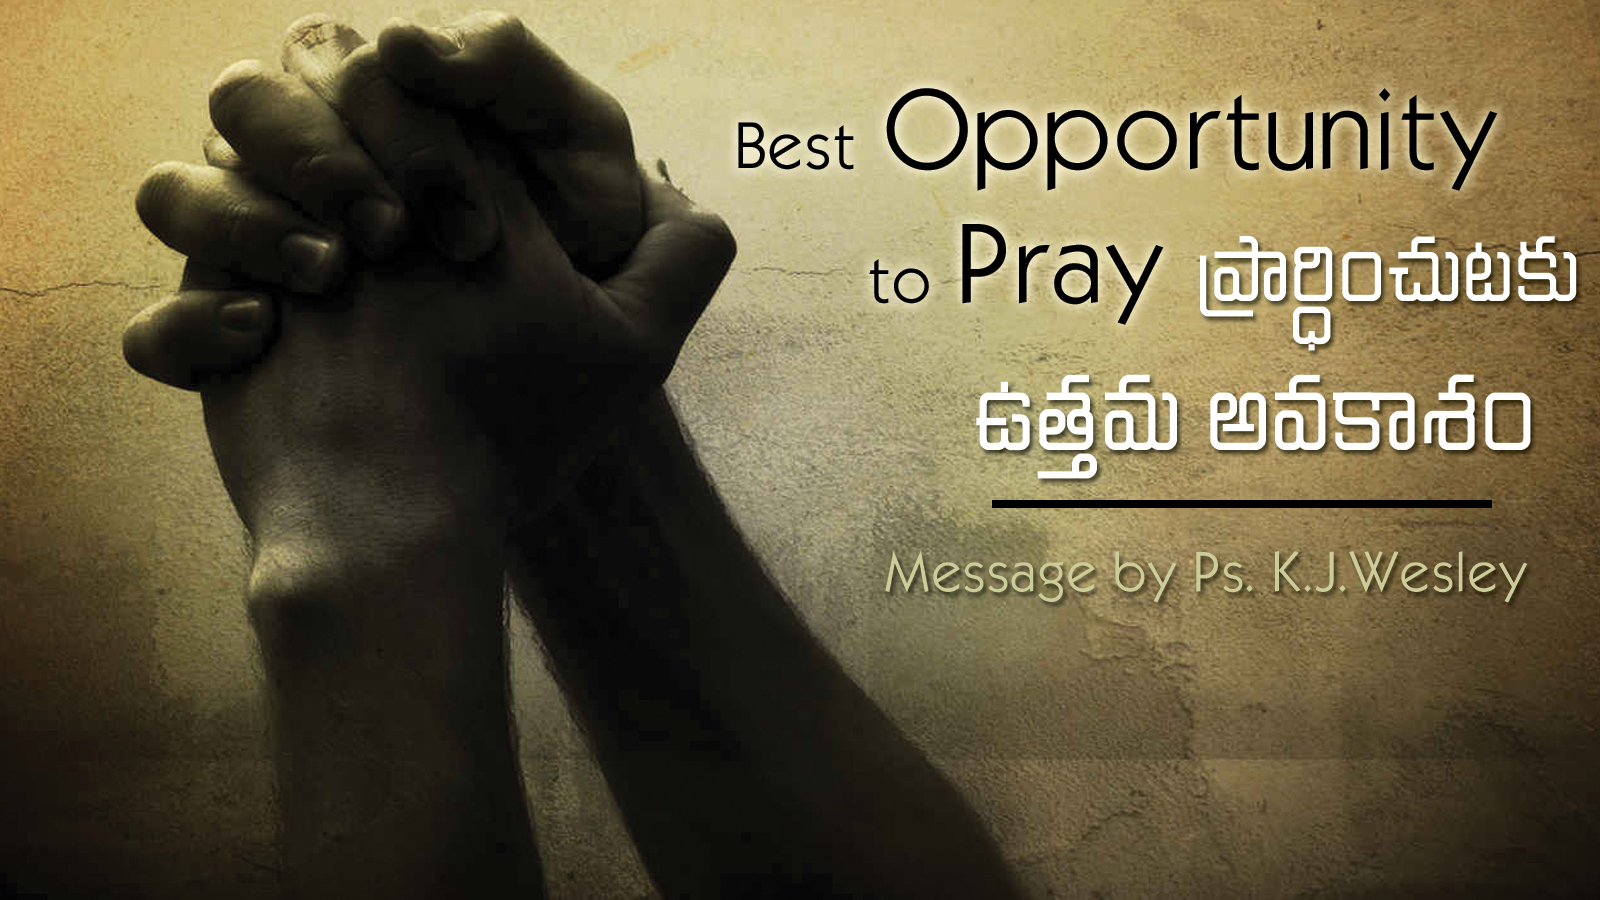 Best Opportunity to Pray (A322)